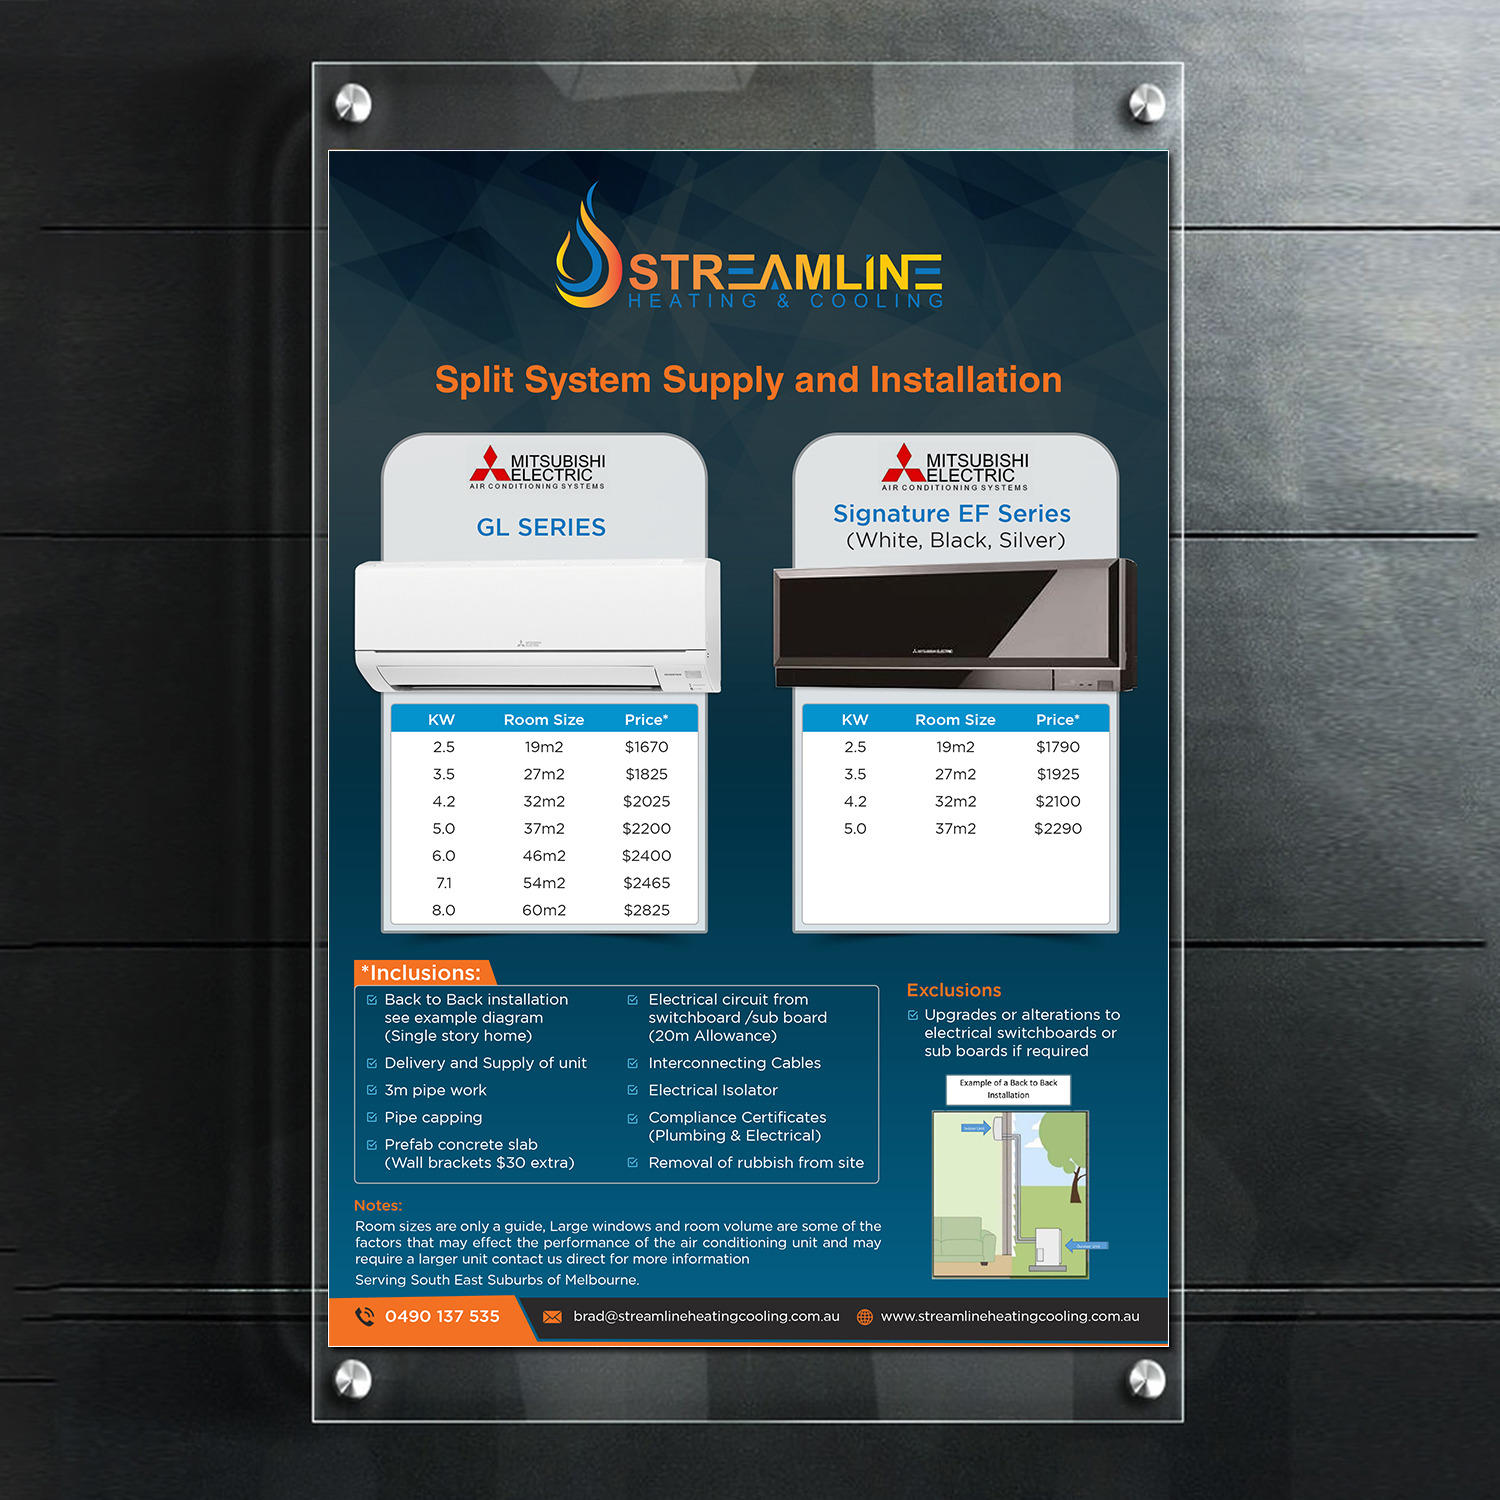 Serious Elegant Air Conditioning Flyer Design For Streamline Electric Circuit By Debdesign Heating Cooling 19690051